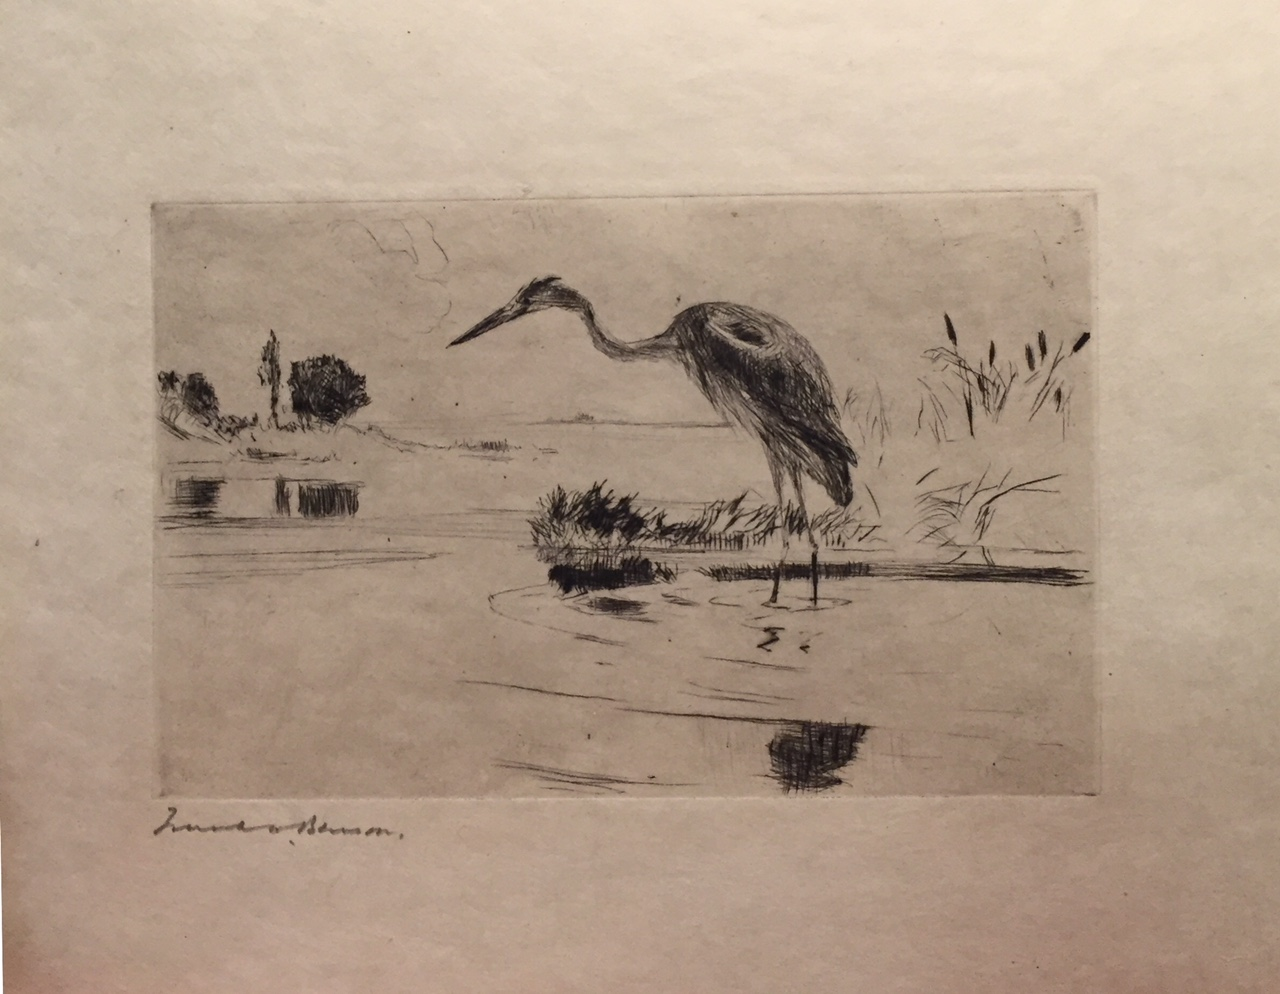 """Heron Fishing, 159  Drypoint on paper 3 1/2"""" x 5 1/2"""" Pencil signed, Paff #164"""